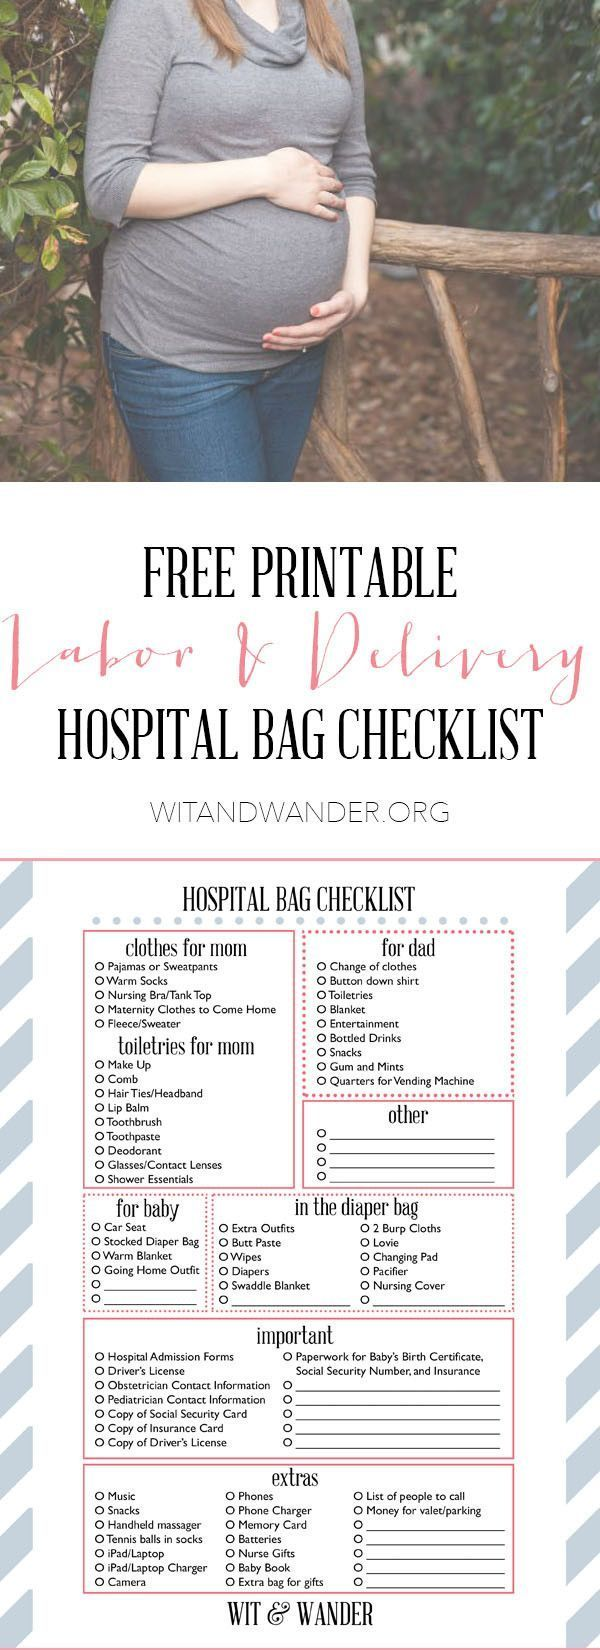 This Printable Maternity Hospital Bag Checklist from Wit & Wander will help you get organized before you head to the hospital to give birth.: